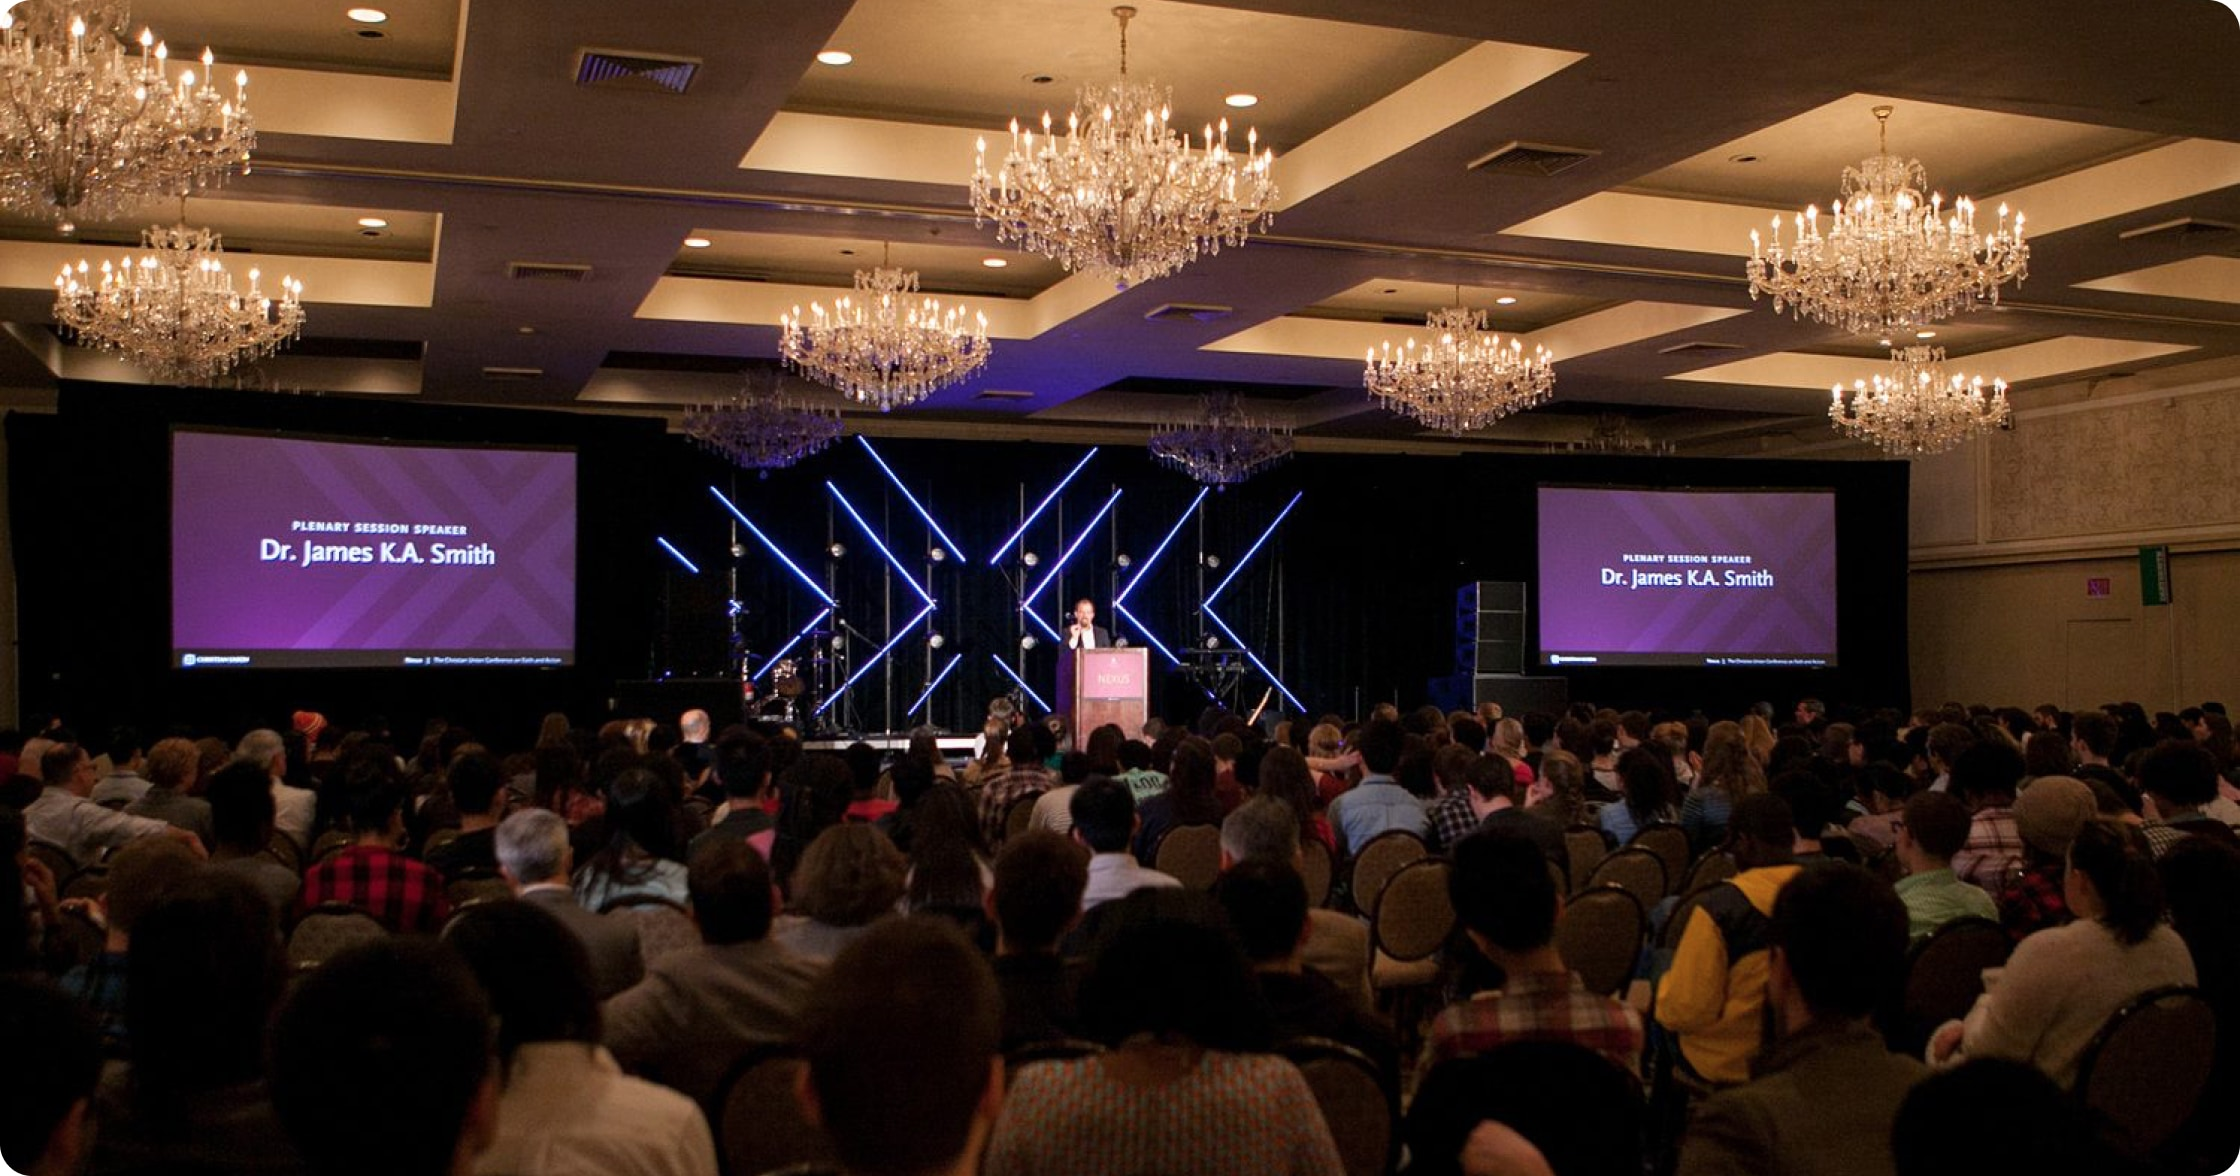 Christian Union's Mobile App Elevates Their Conference Experience